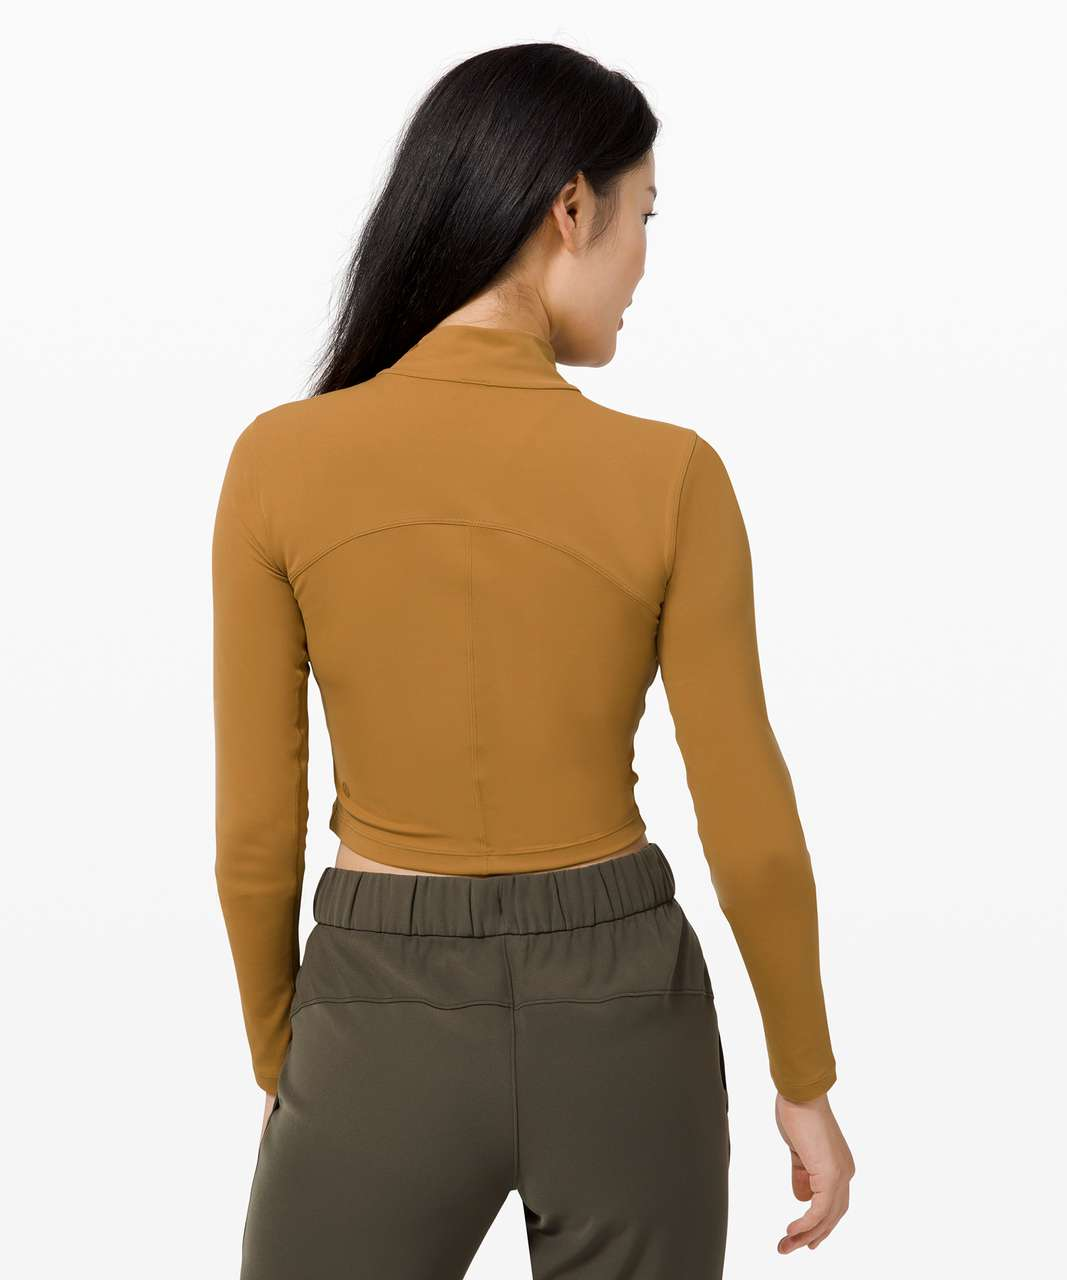 Lululemon All Aligned Mock Neck Long Sleeve - Spiced Bronze